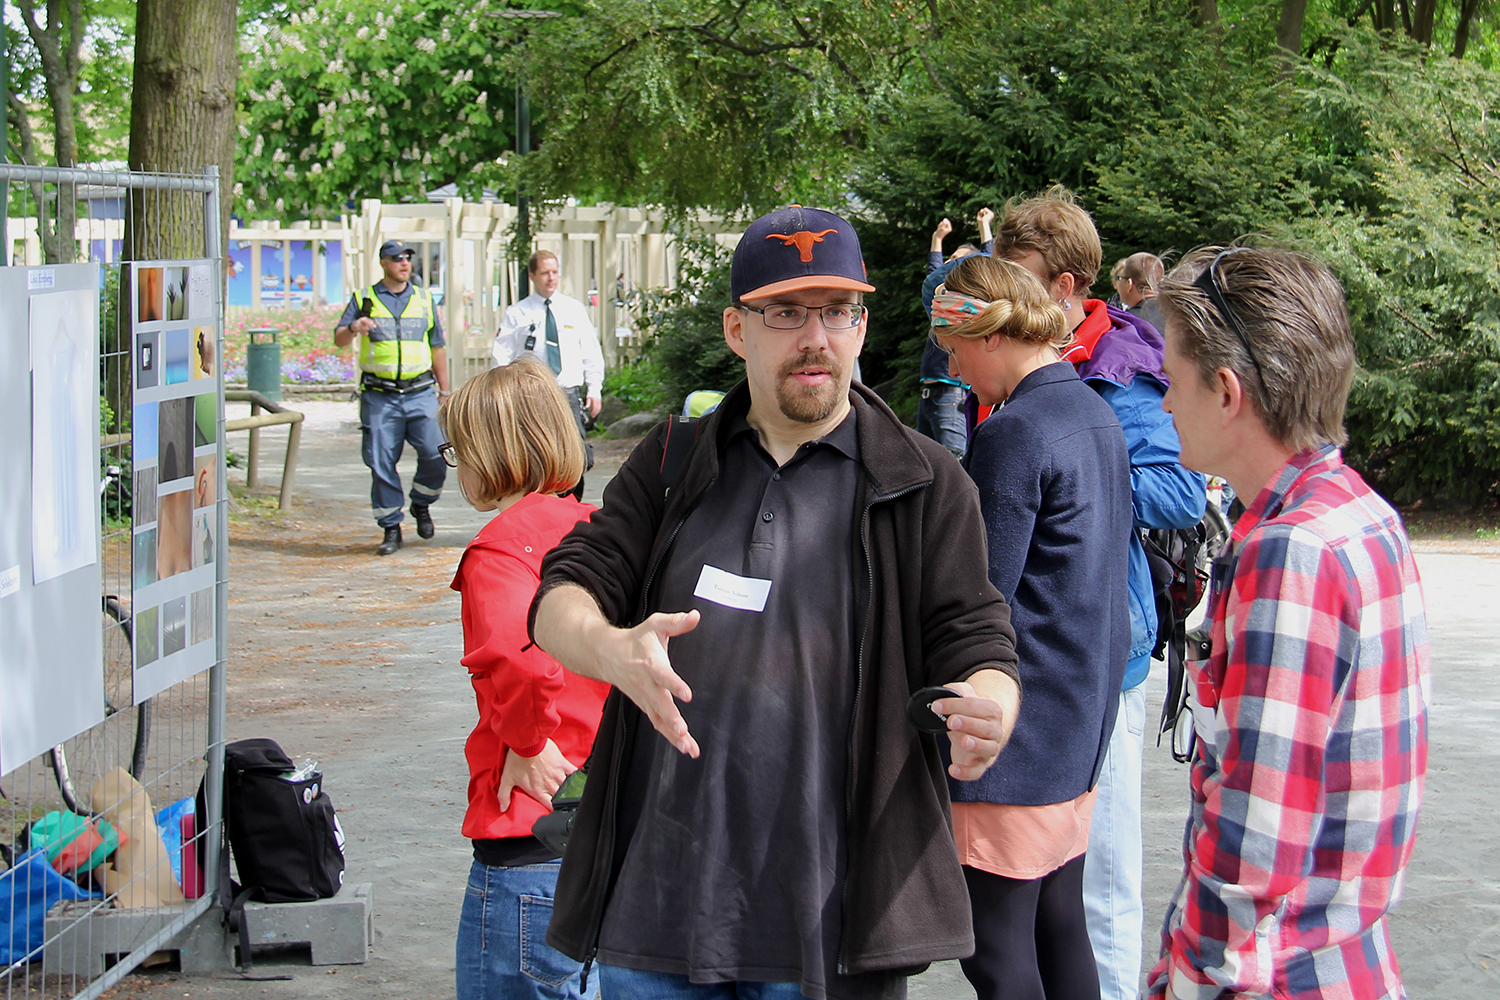 """One of the """"downsides"""" to being at a photo exhibition. You run the risk of ending up in a picture! Here I'm gesturing about something with Klas Svensson, a fellow exhibitor who showed some very fine nature photographs. Photo by Ulf Nilsson"""